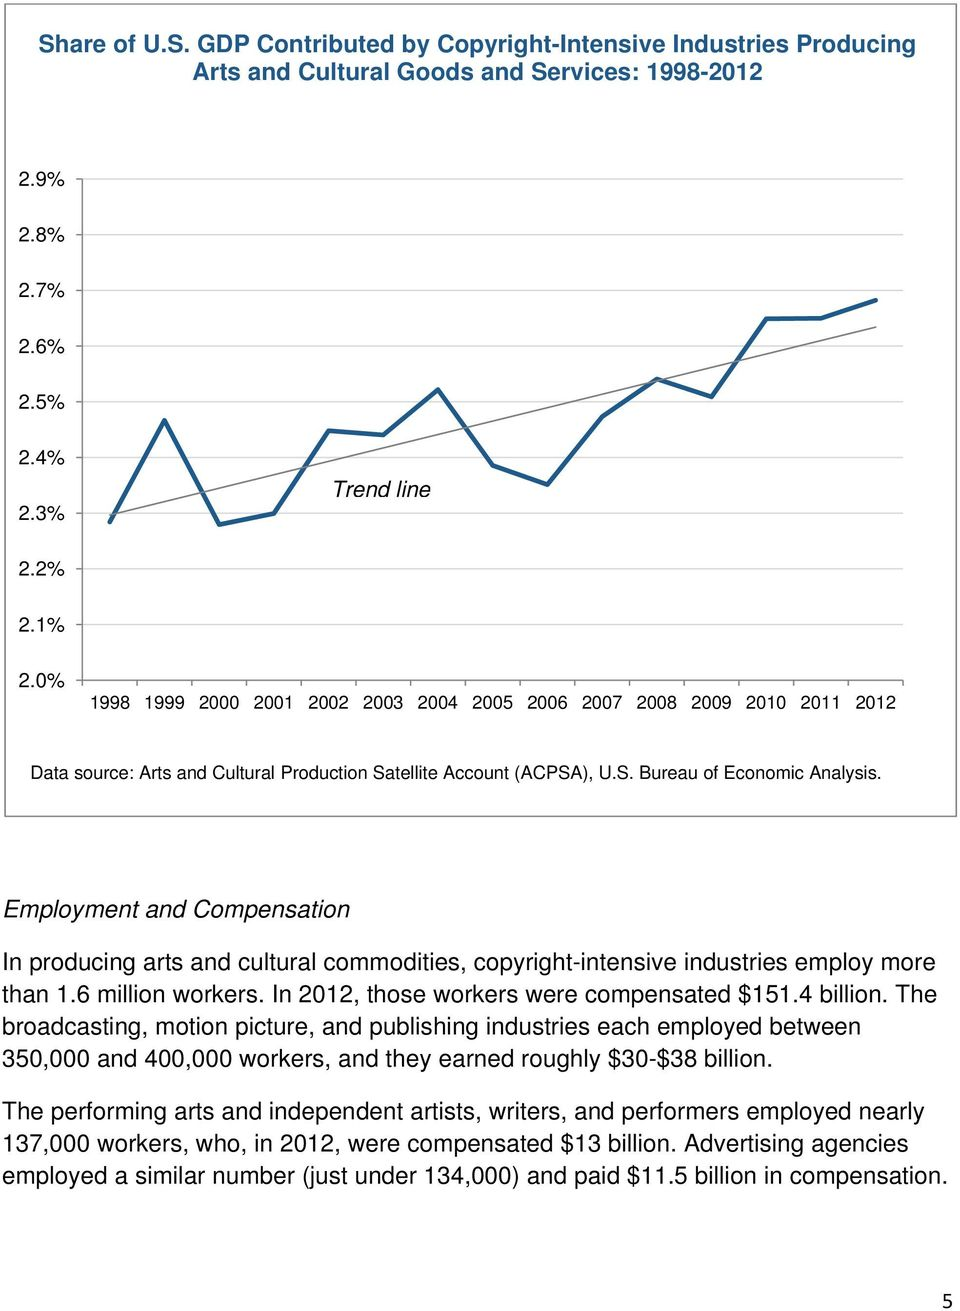 Employment and Compensation In producing arts and cultural commodities, copyright-intensive industries employ more than 1.6 million workers. In 2012, those workers were compensated $151.4 billion.